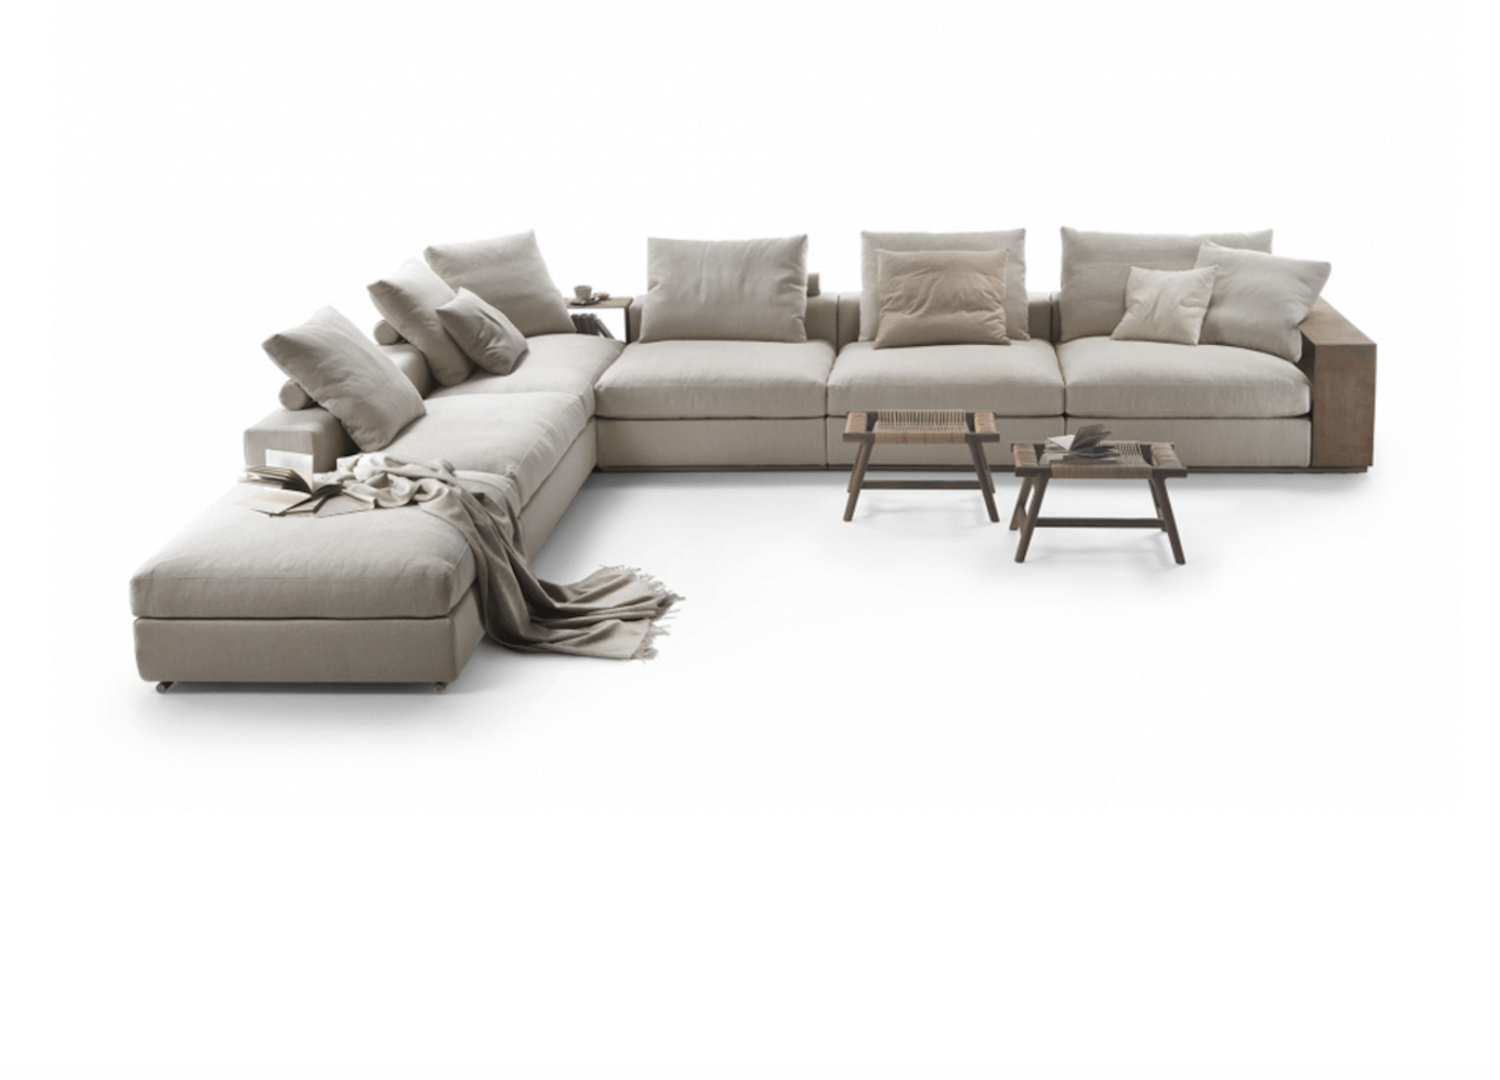 est living design directory groundpiece sofa fanuli 1